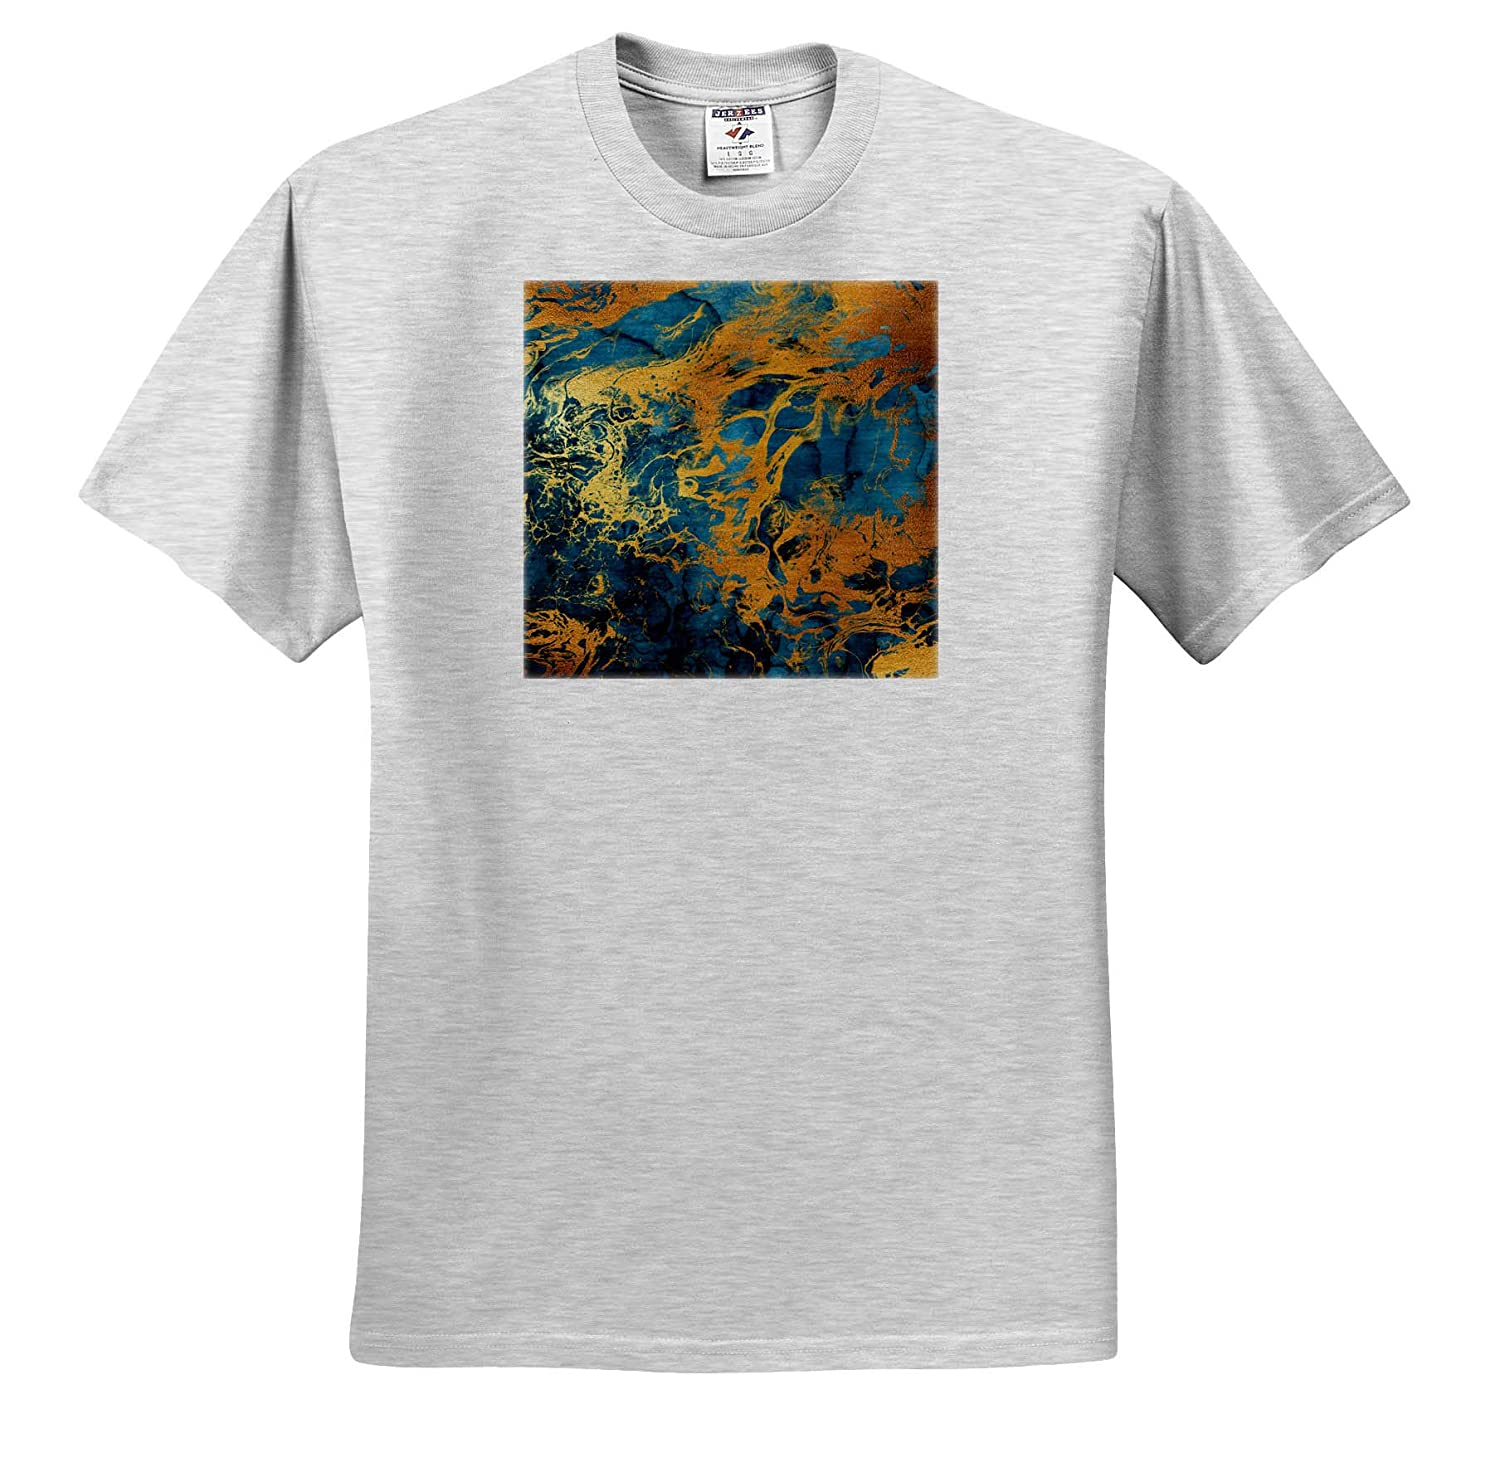 Abstract 3dRose Anne Marie Baugh T-Shirts Blue Image of Watercolor and Gold Color Abstract Wash Effect